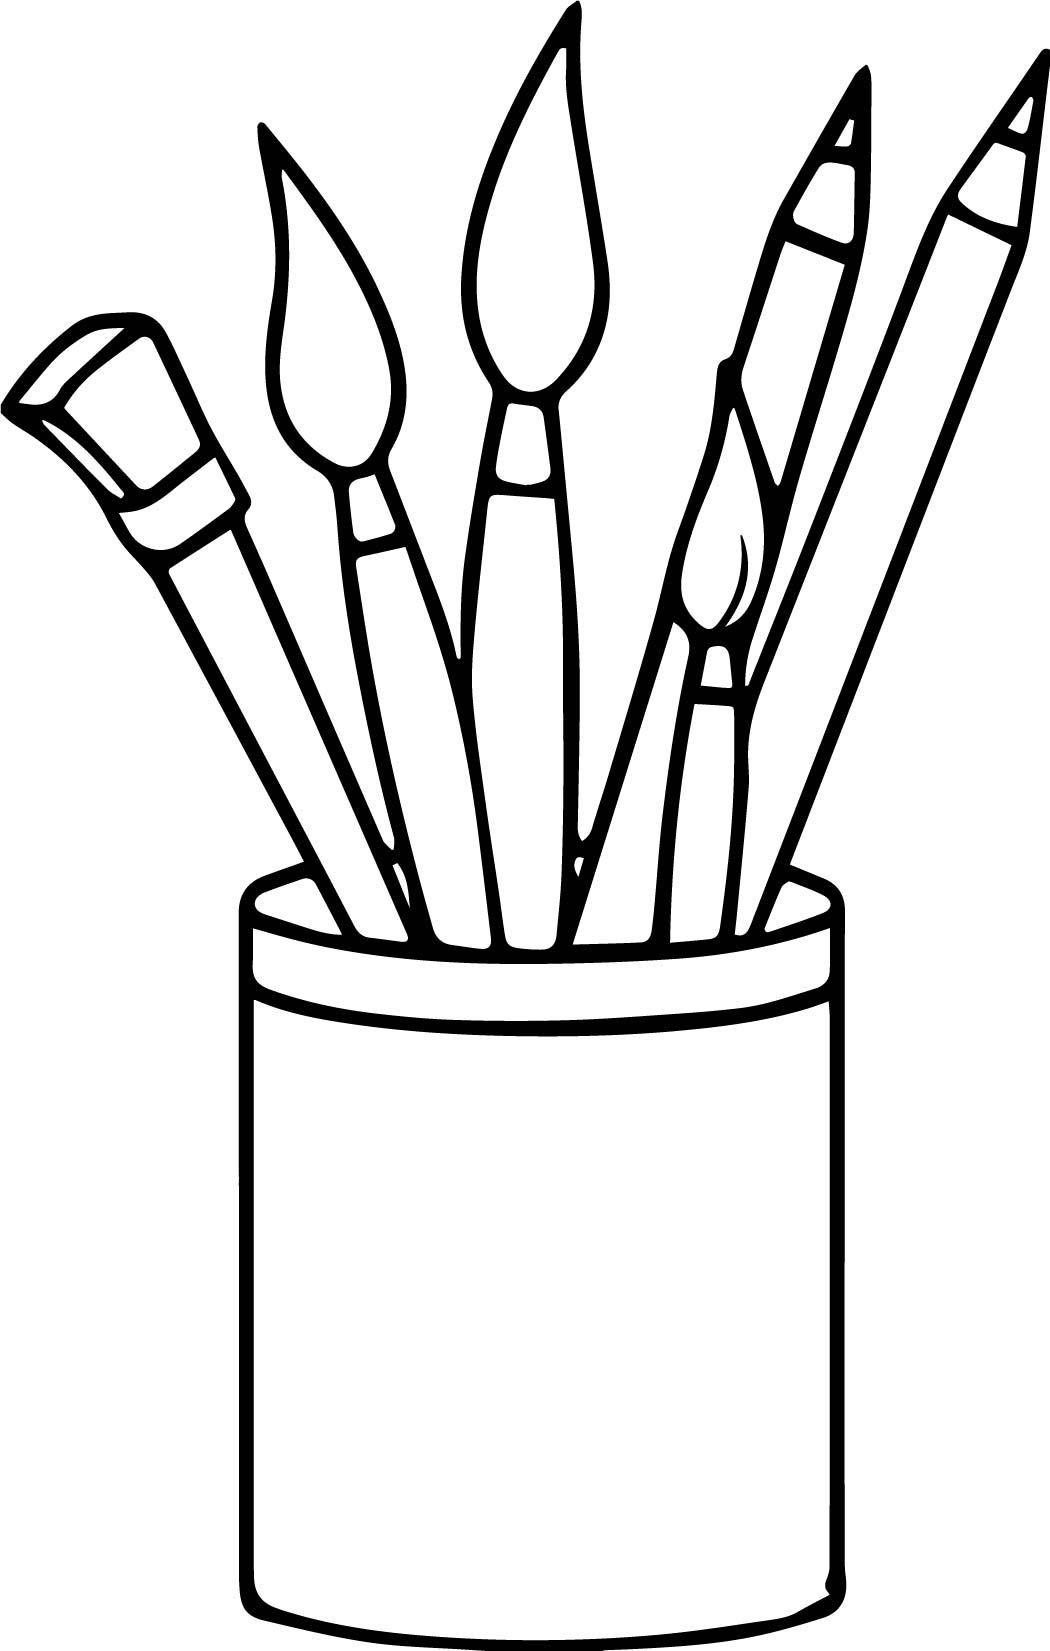 Nice Art Supplies Pencils Paint Brushes Coloring Page Coloring